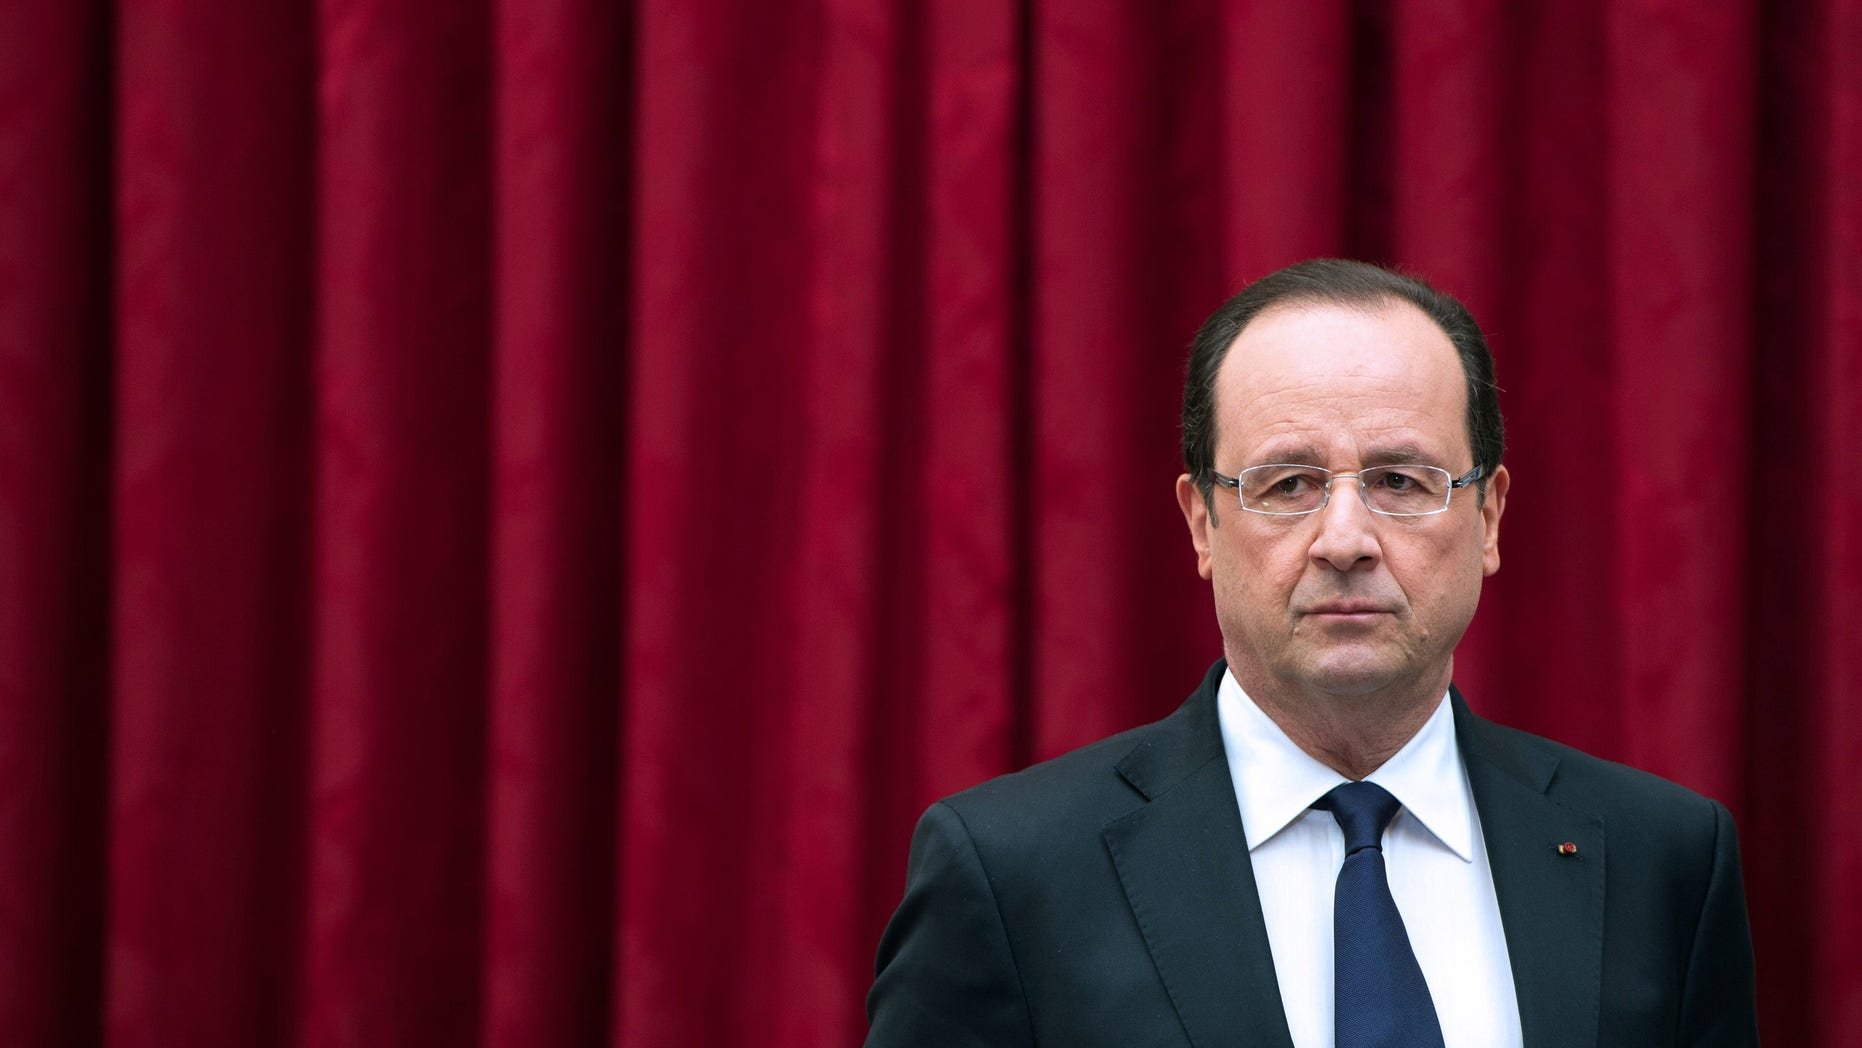 France's President Francois Hollande arrives to deliver a speech to ministers and members of the White Book of Defense and National Security committee at the Elysee presidential palace in Paris, Monday April 29, 2013. France said Monday it will cut another 24,000 military jobs by 2019 as it attempts to maintain a force ready to deal with global threats at the time when the bill for France's decades of deficit spending is due. (AP Photo/Bertrand Langlois, Pool)